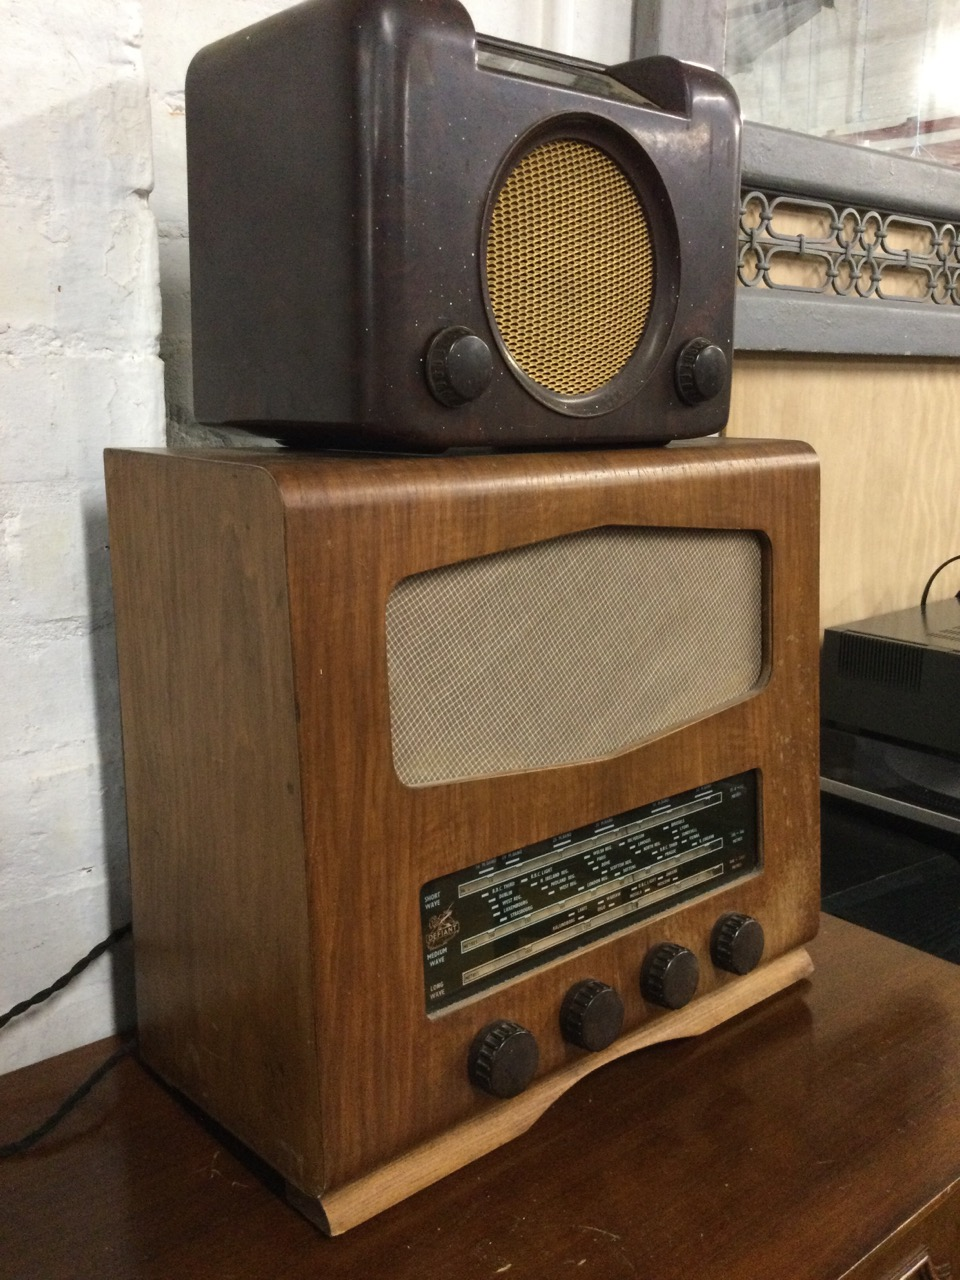 A bakelite cased Bush valve radio with circular speaker beneath glass dial; and a later walnut cased - Image 3 of 3